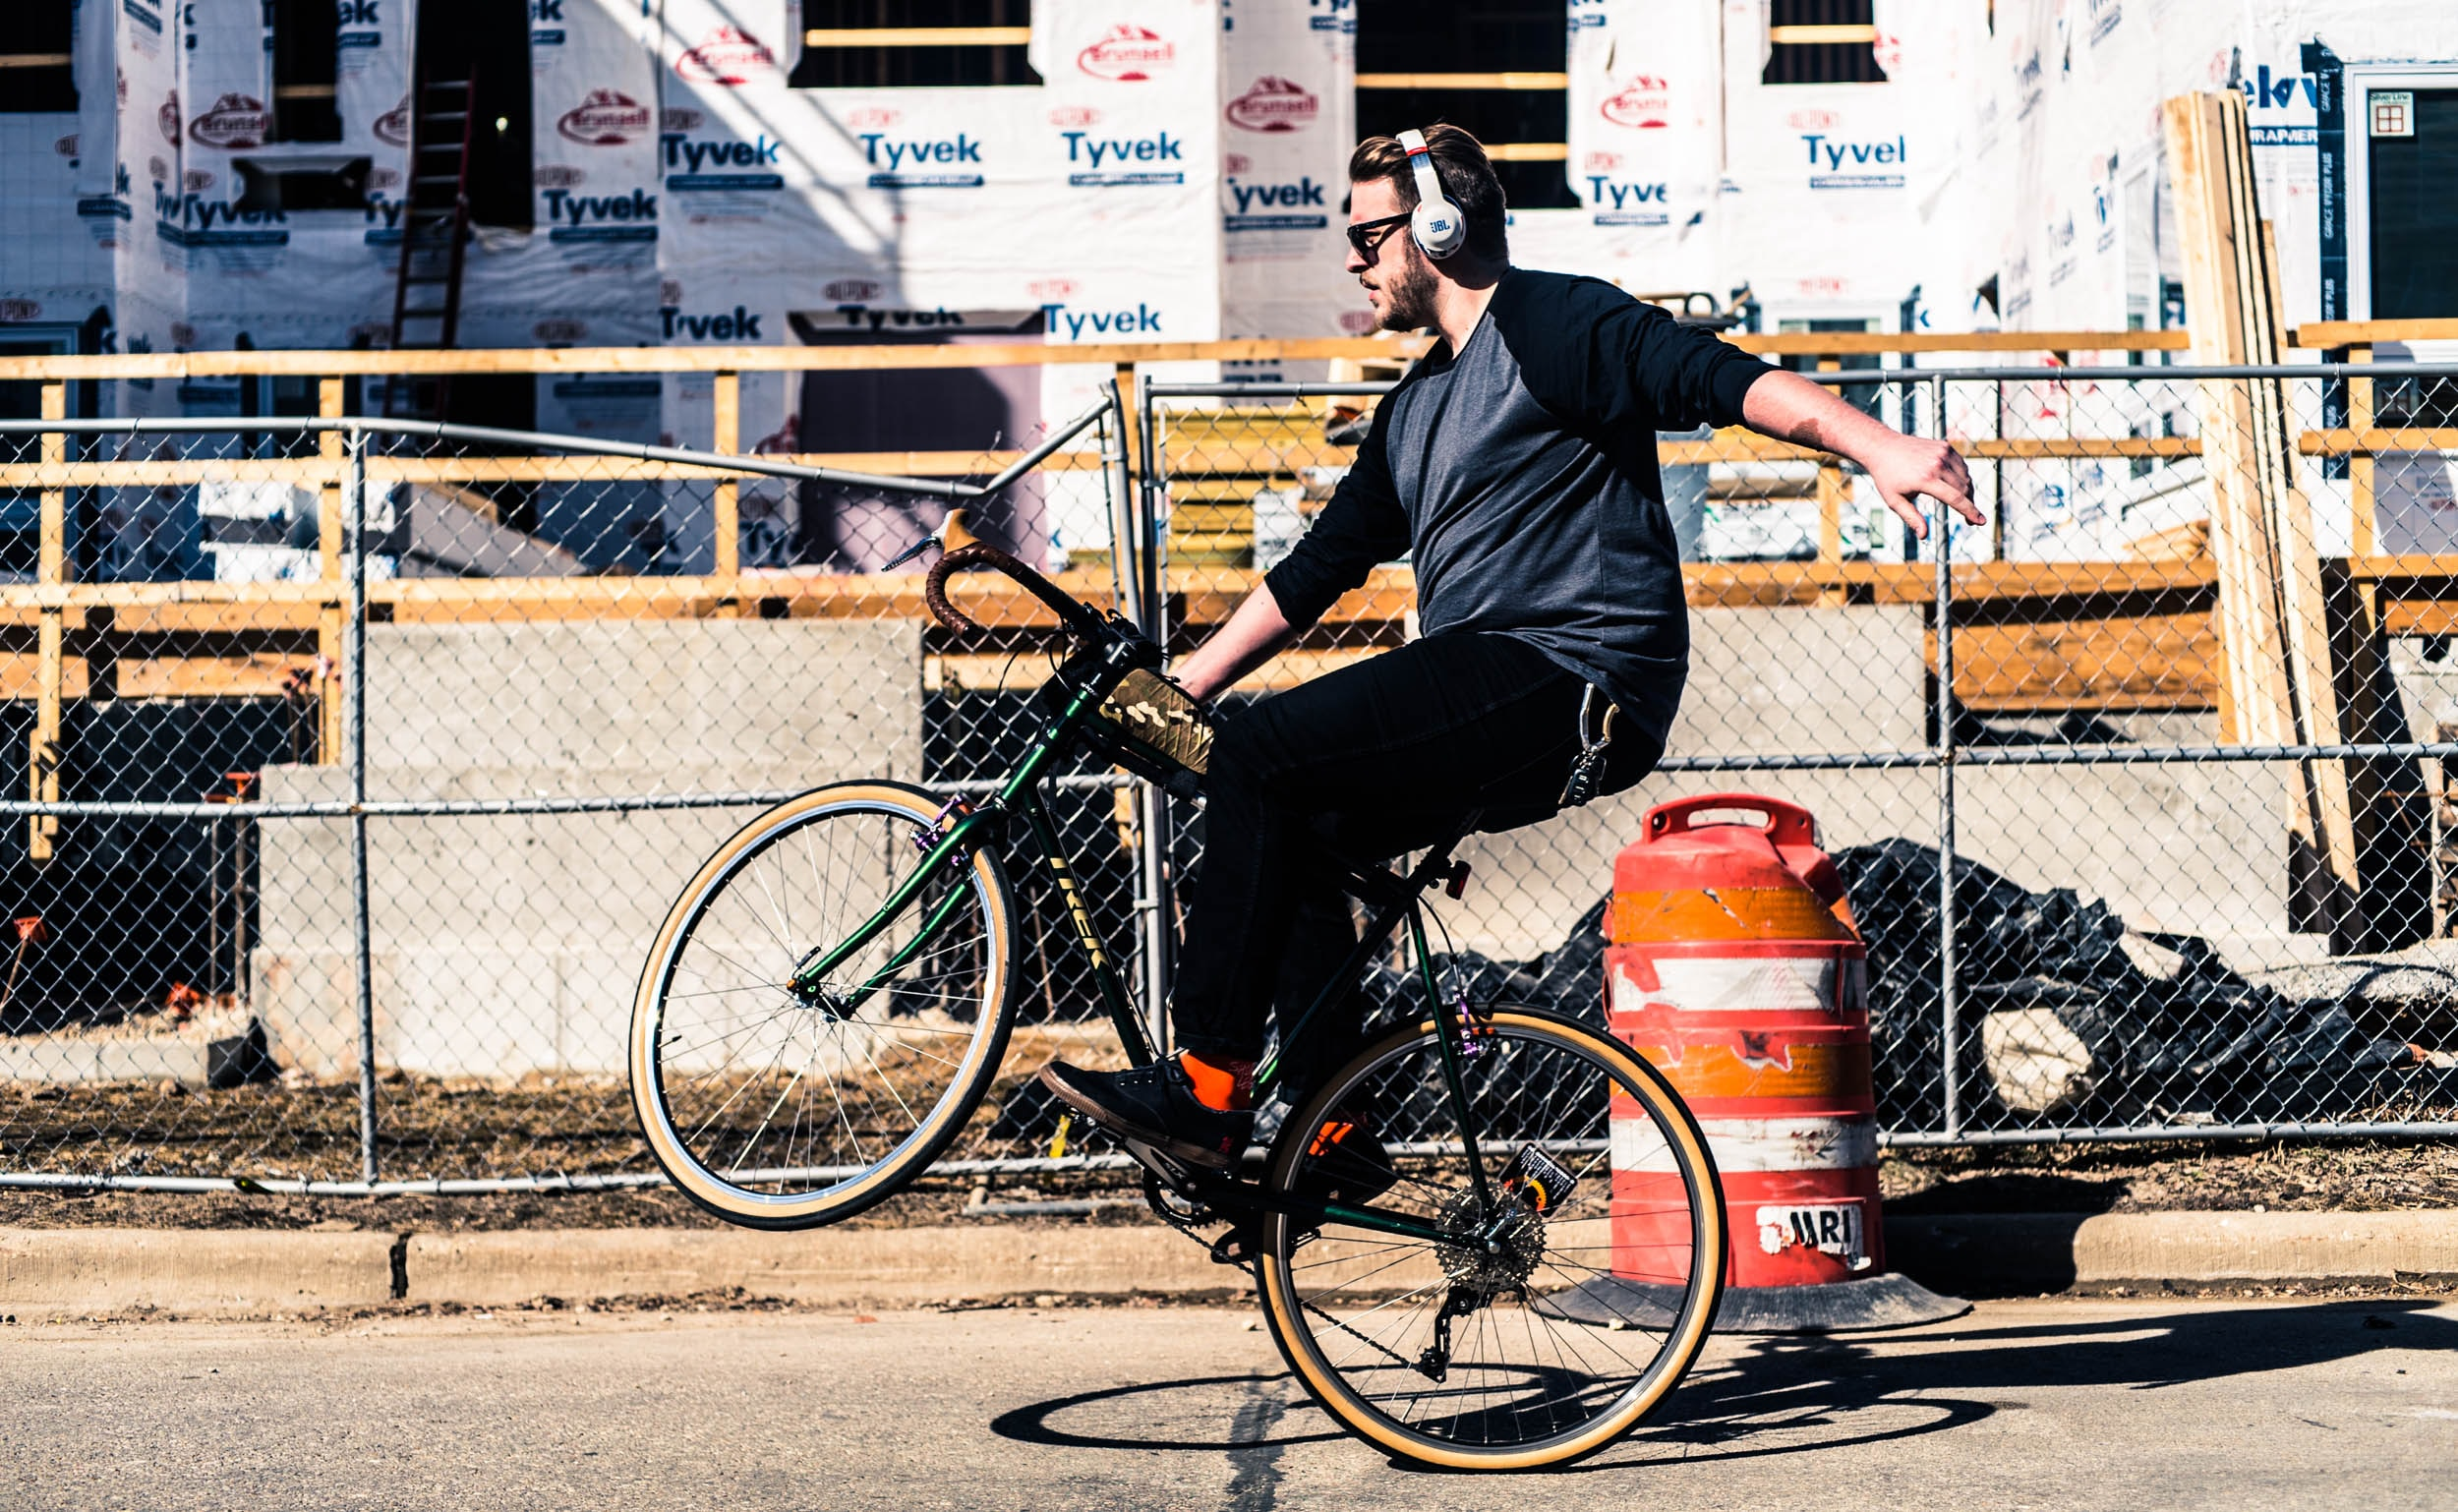 man riding on bicycle using headphones